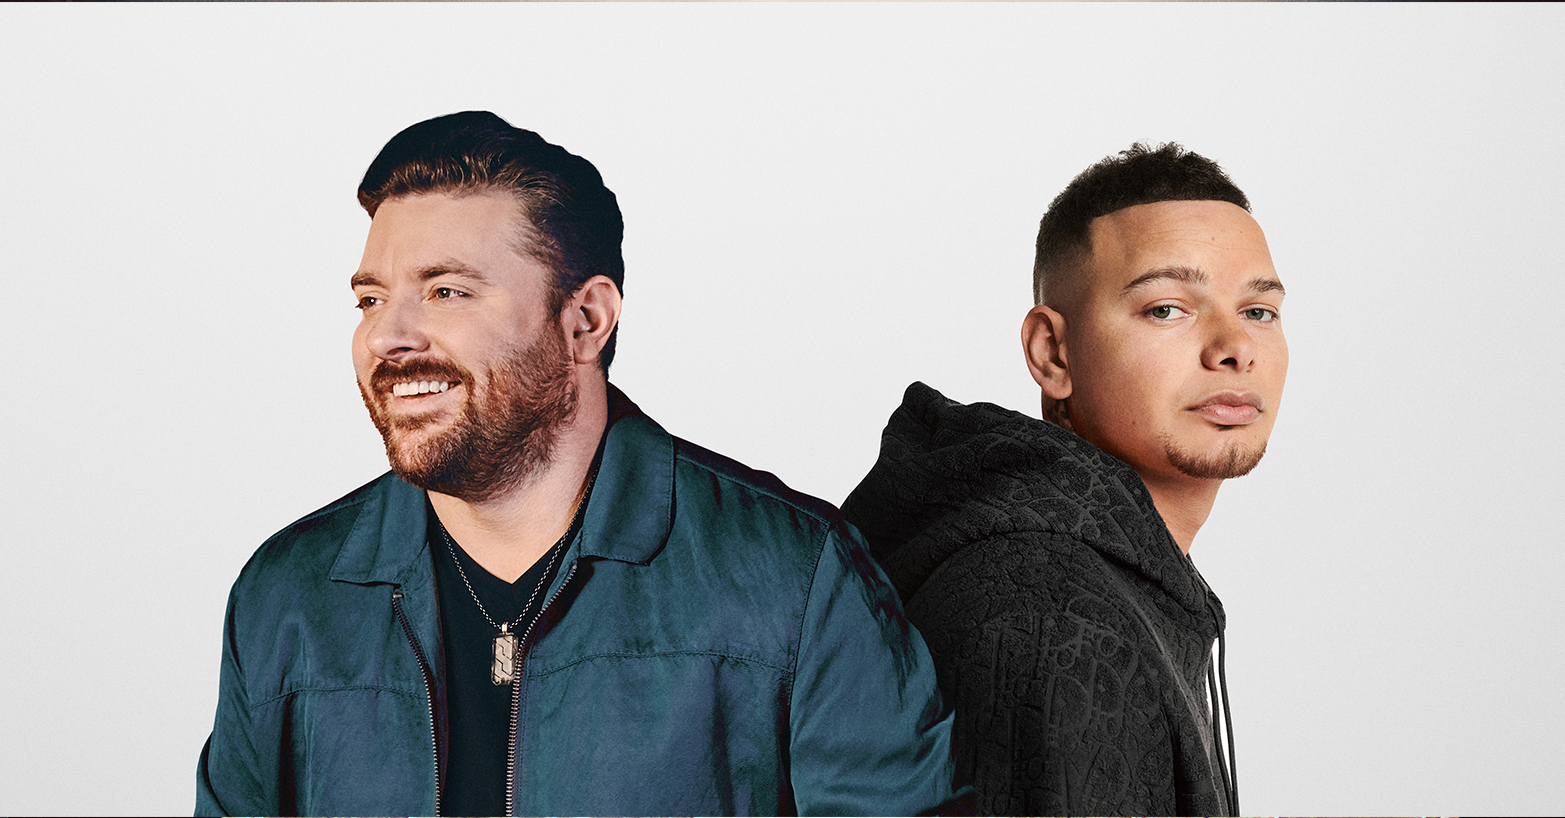 CHRIS YOUNG & KANE BROWN